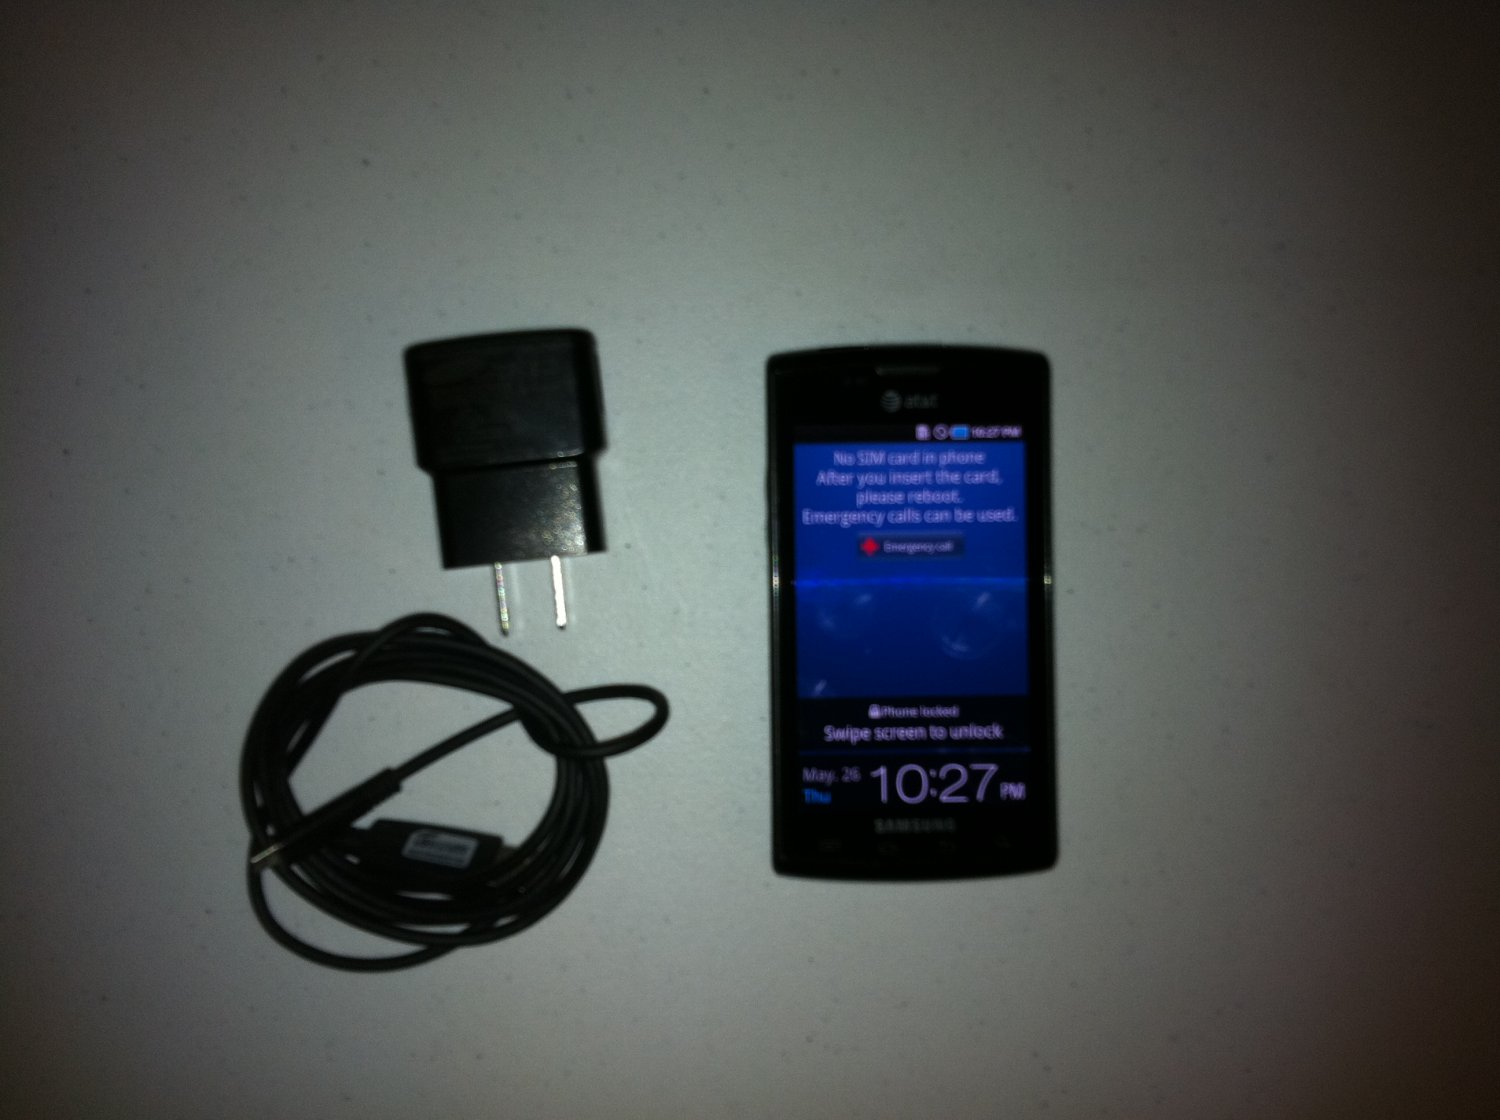 Samsung Captivate Galaxy S (AT&T) Excellent. Insured